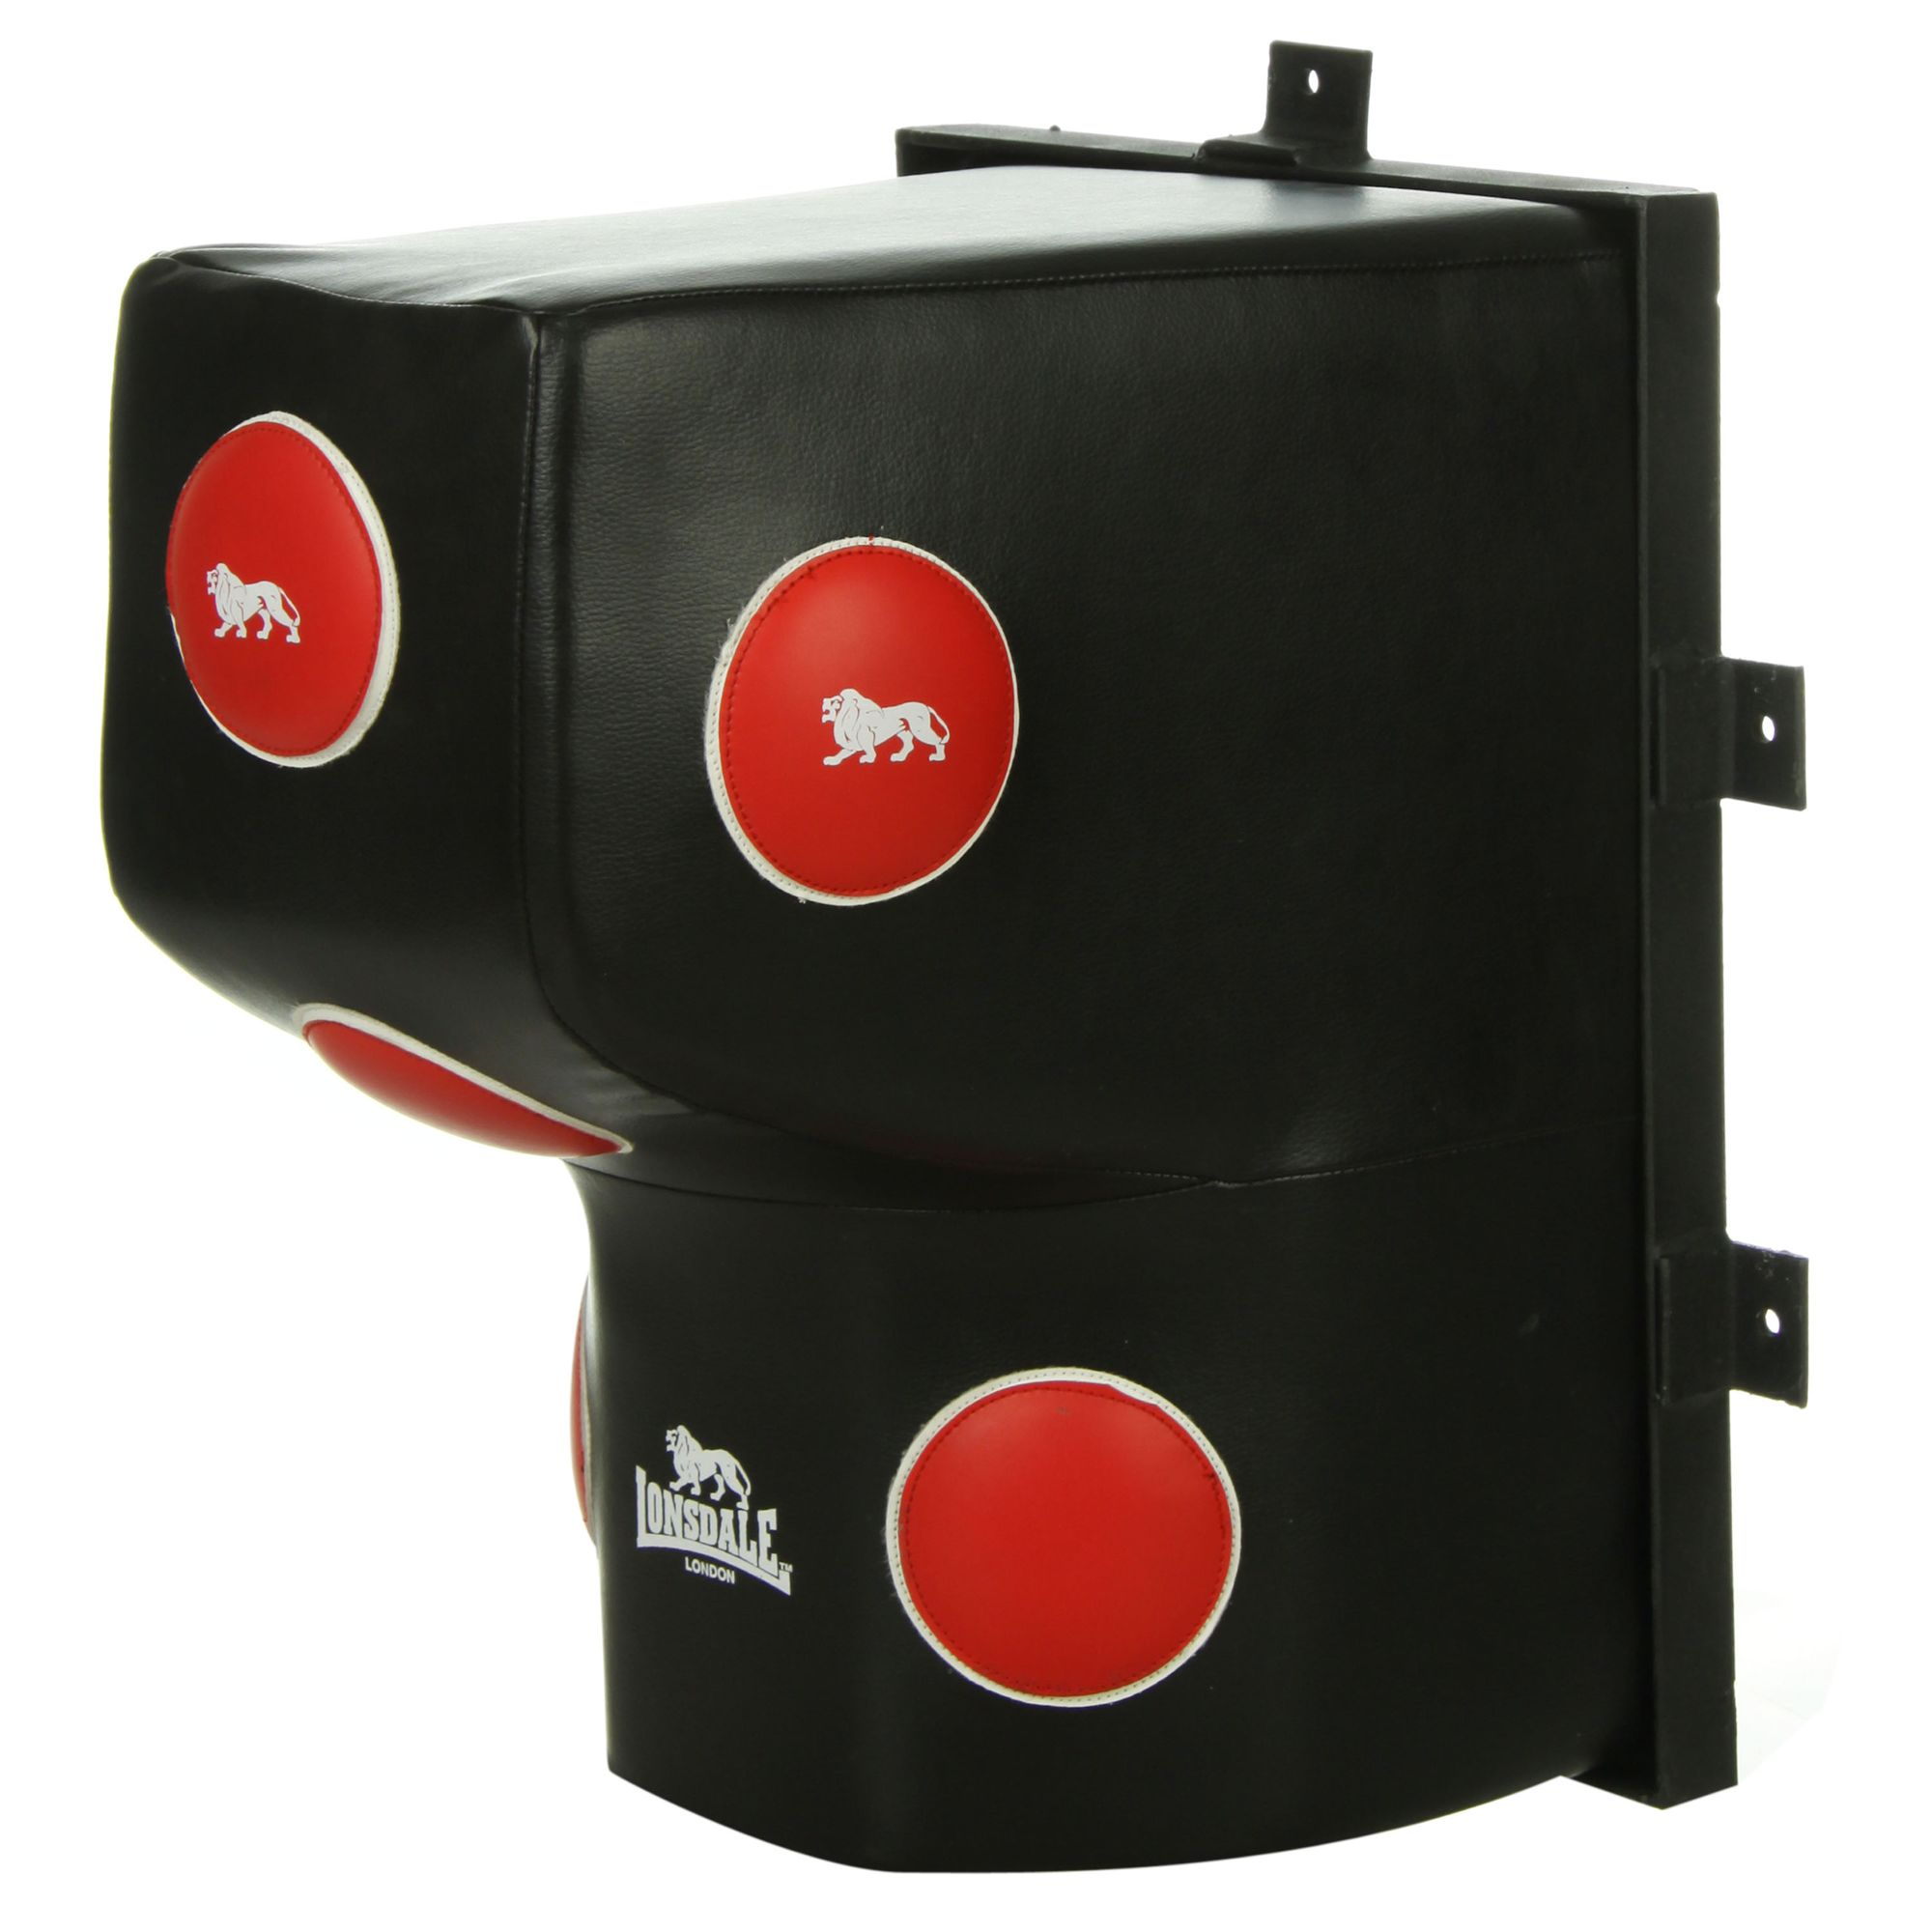 Golf Bags For Sale >> Lonsdale Pro PU Wall Mount Striking Bag